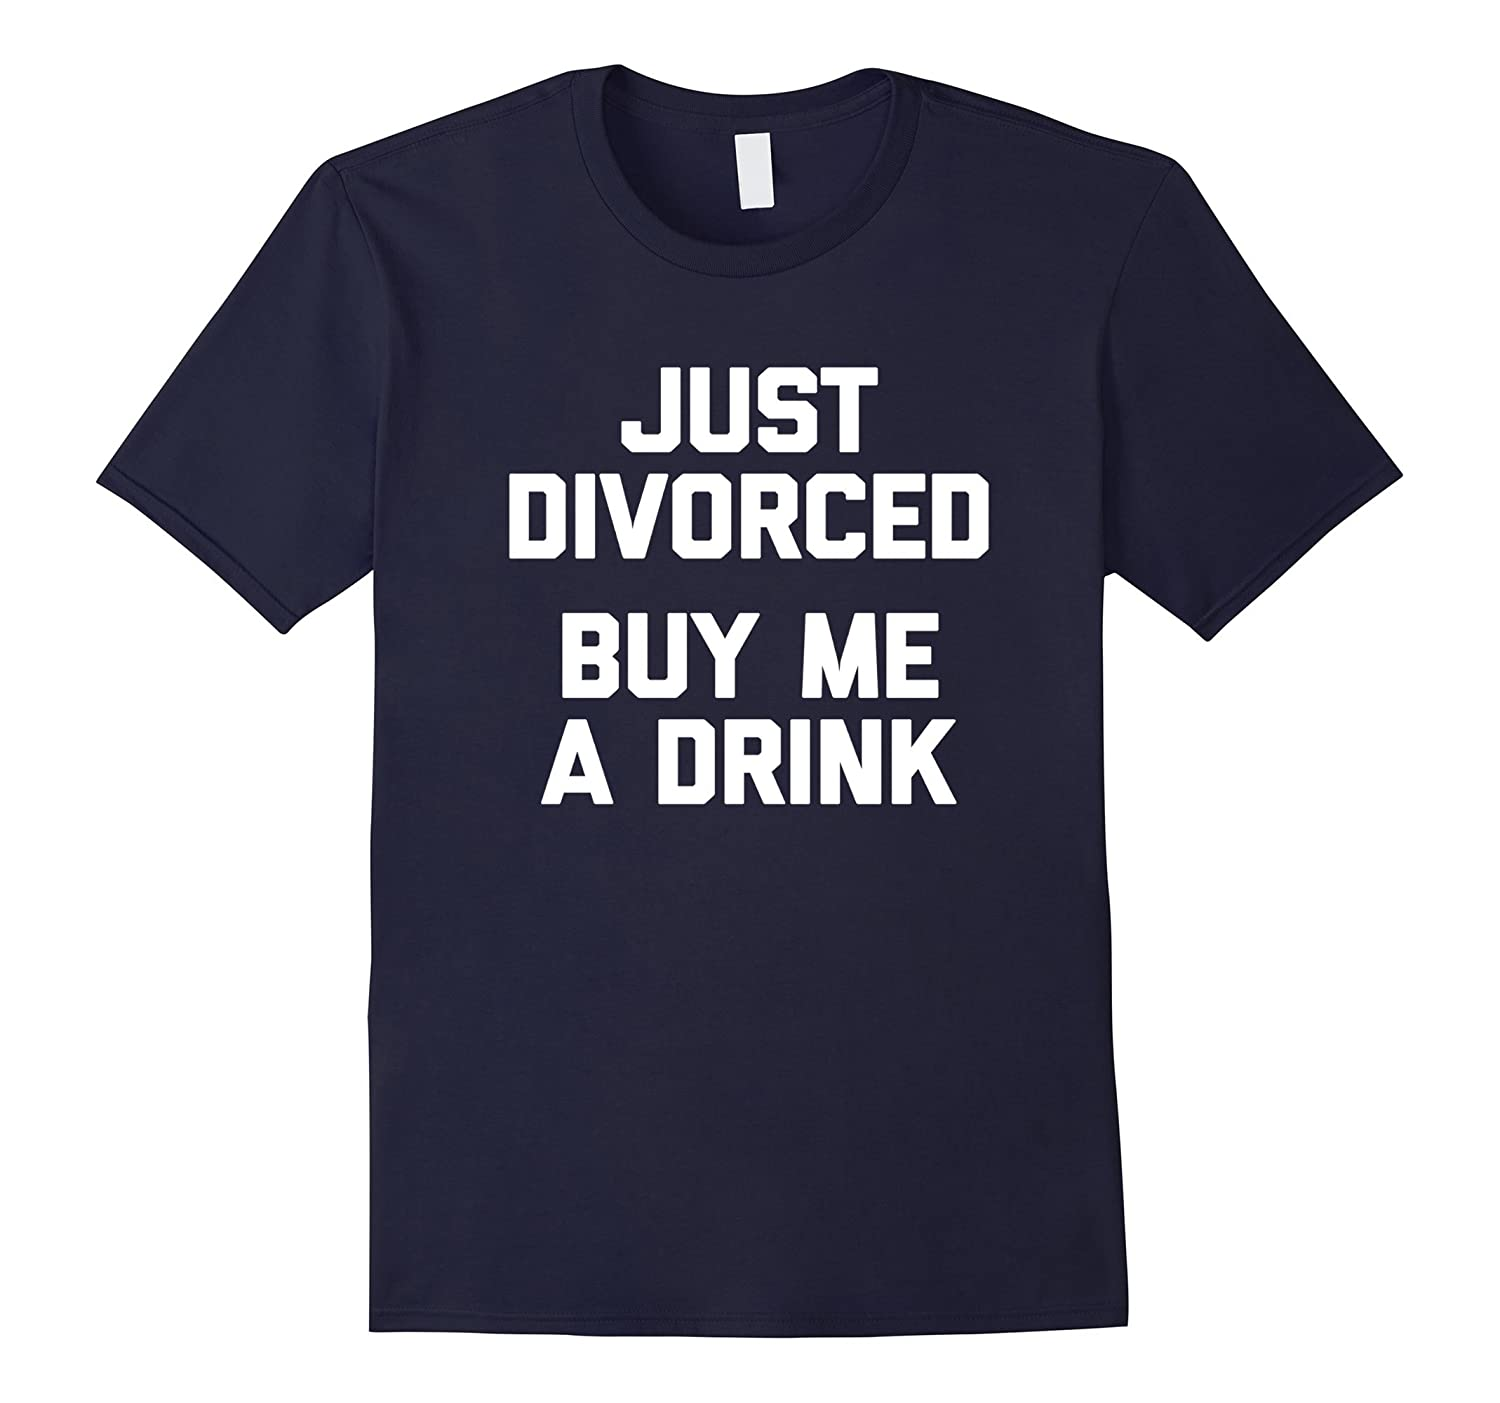 Just Divorced Buy Me A Drink T-Shirt funny saying sarcastic-Vaci